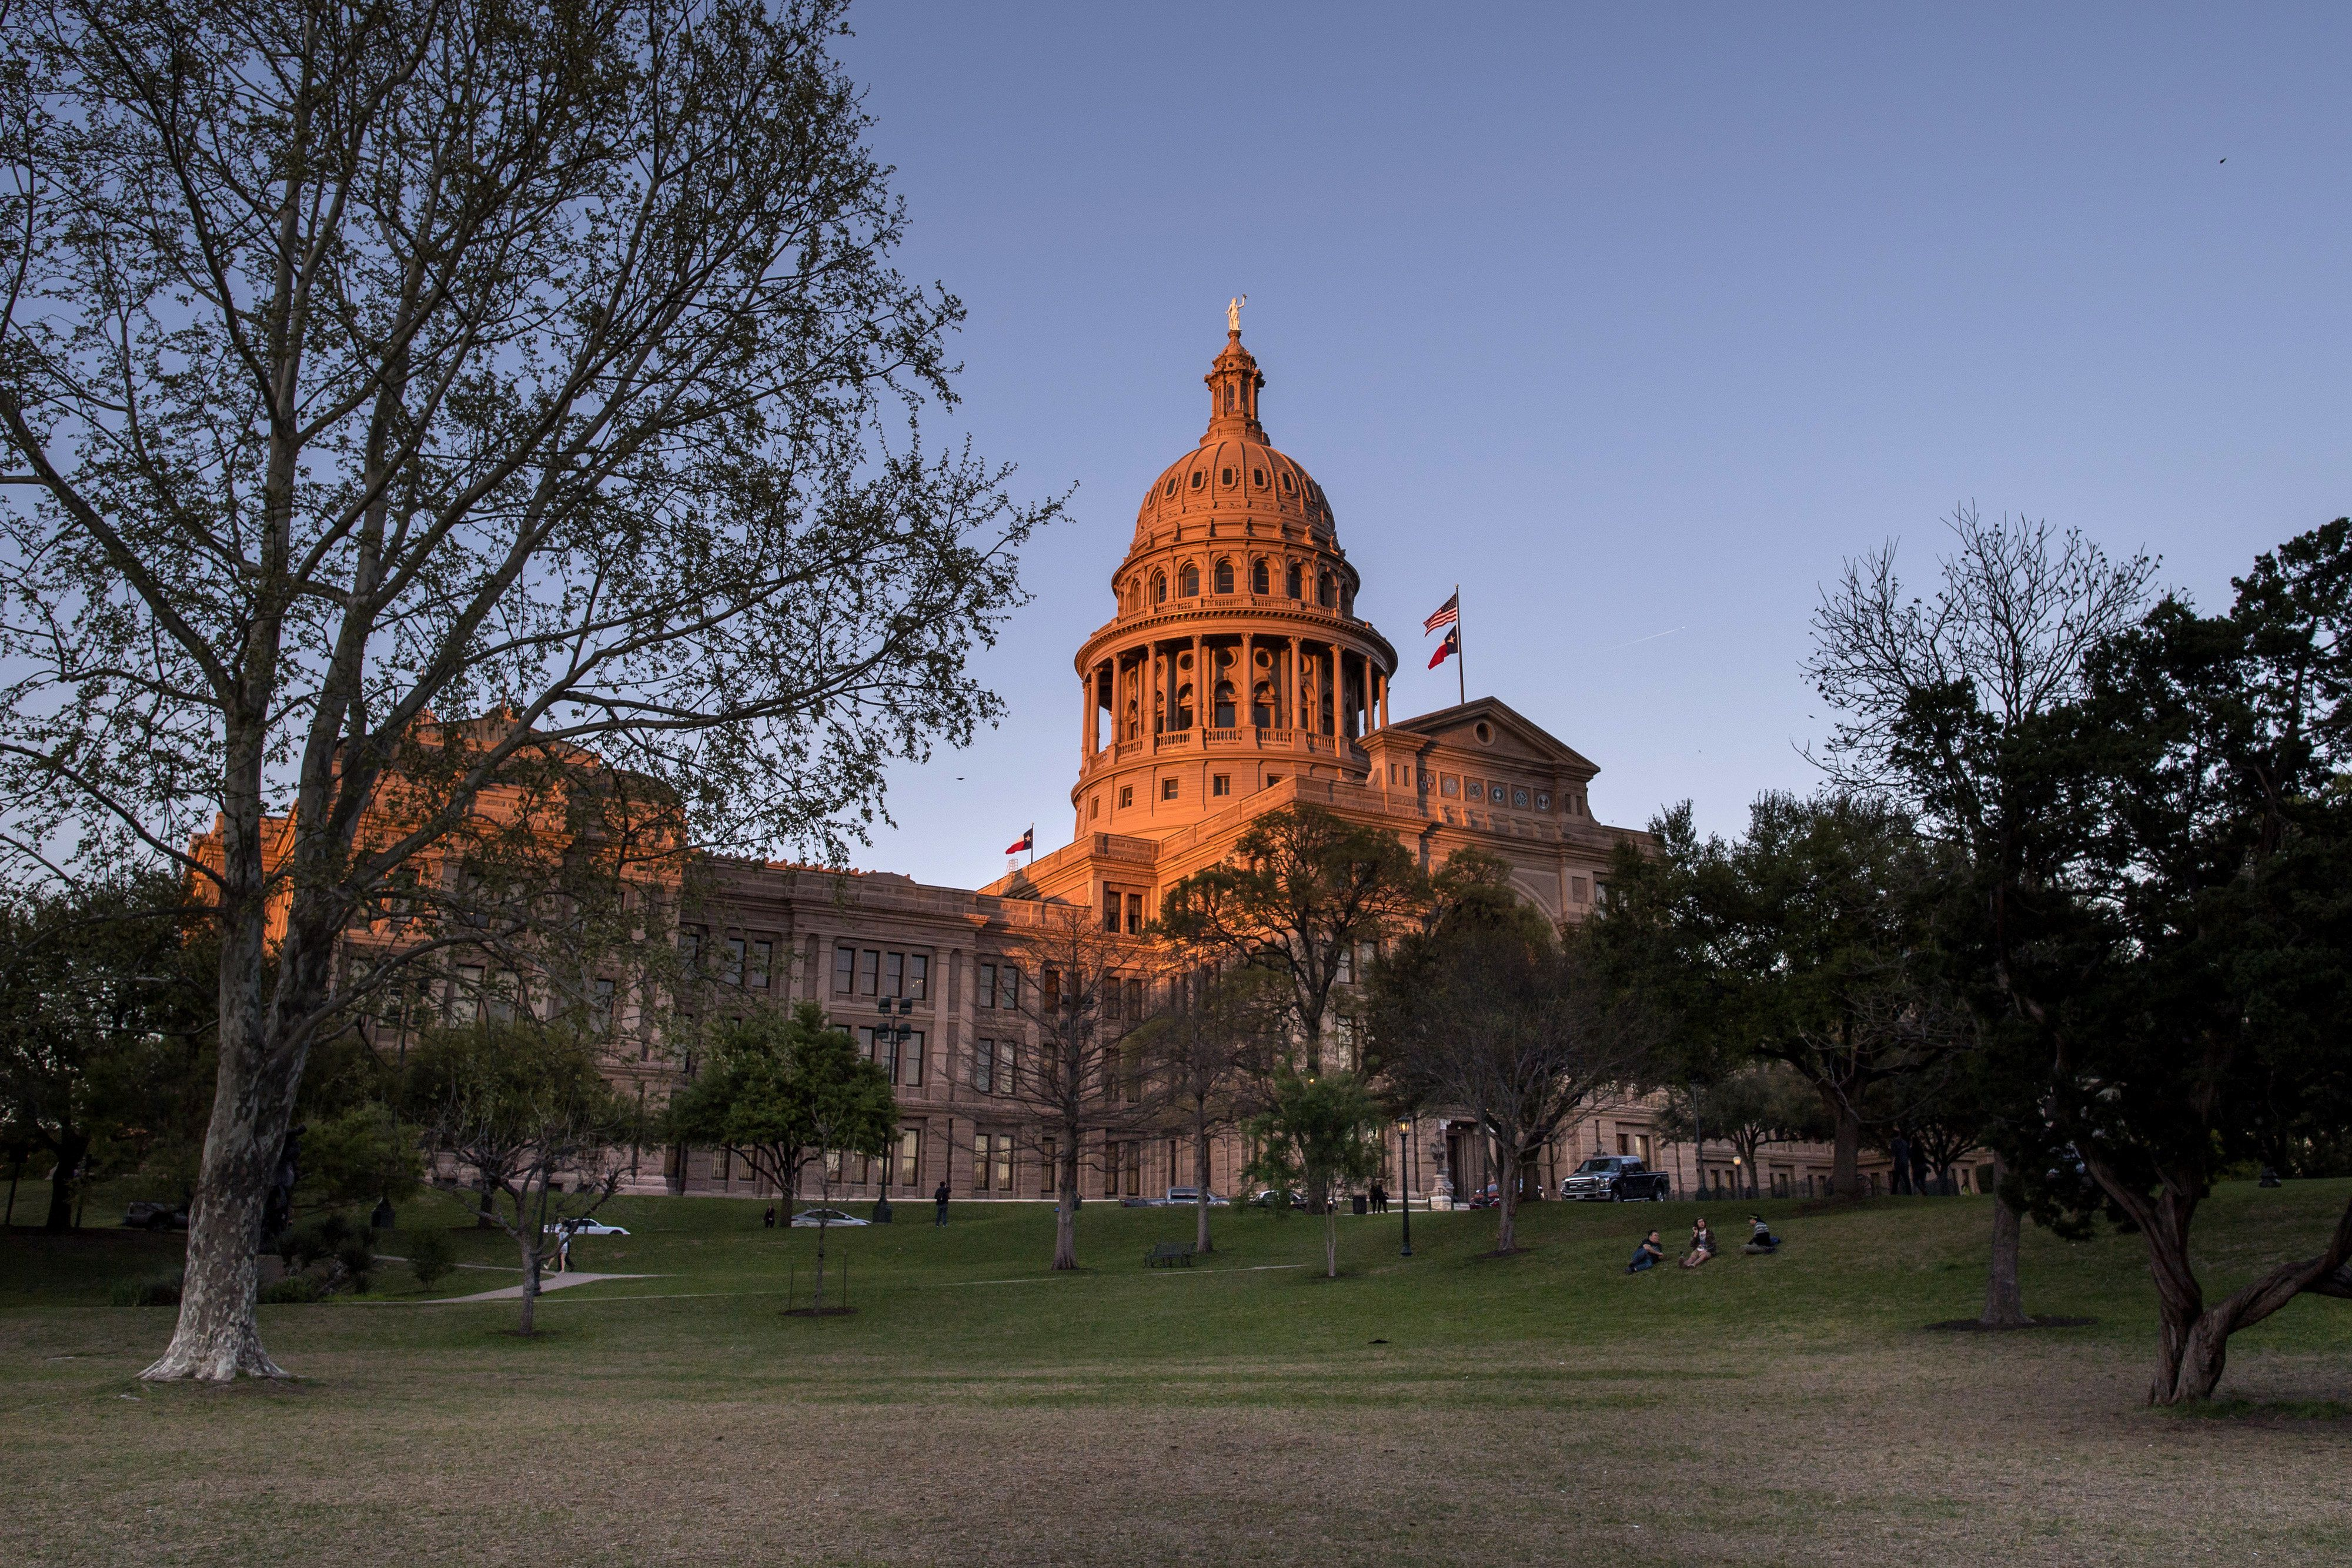 The Texas State Capitol building stands in Austin, Texas, U.S., on Tuesday, March 14, 2017. Austin has spent the last 10 monthsengaged ina bigexperimentin urban transportation.Several hundreds of thousands of people will descend upon Austin for the annual South by Southwest festival, a nine-day event that could be described as a tech conference, a music and film festival. Photographer: David Paul Morris/Bloomberg via Getty Images